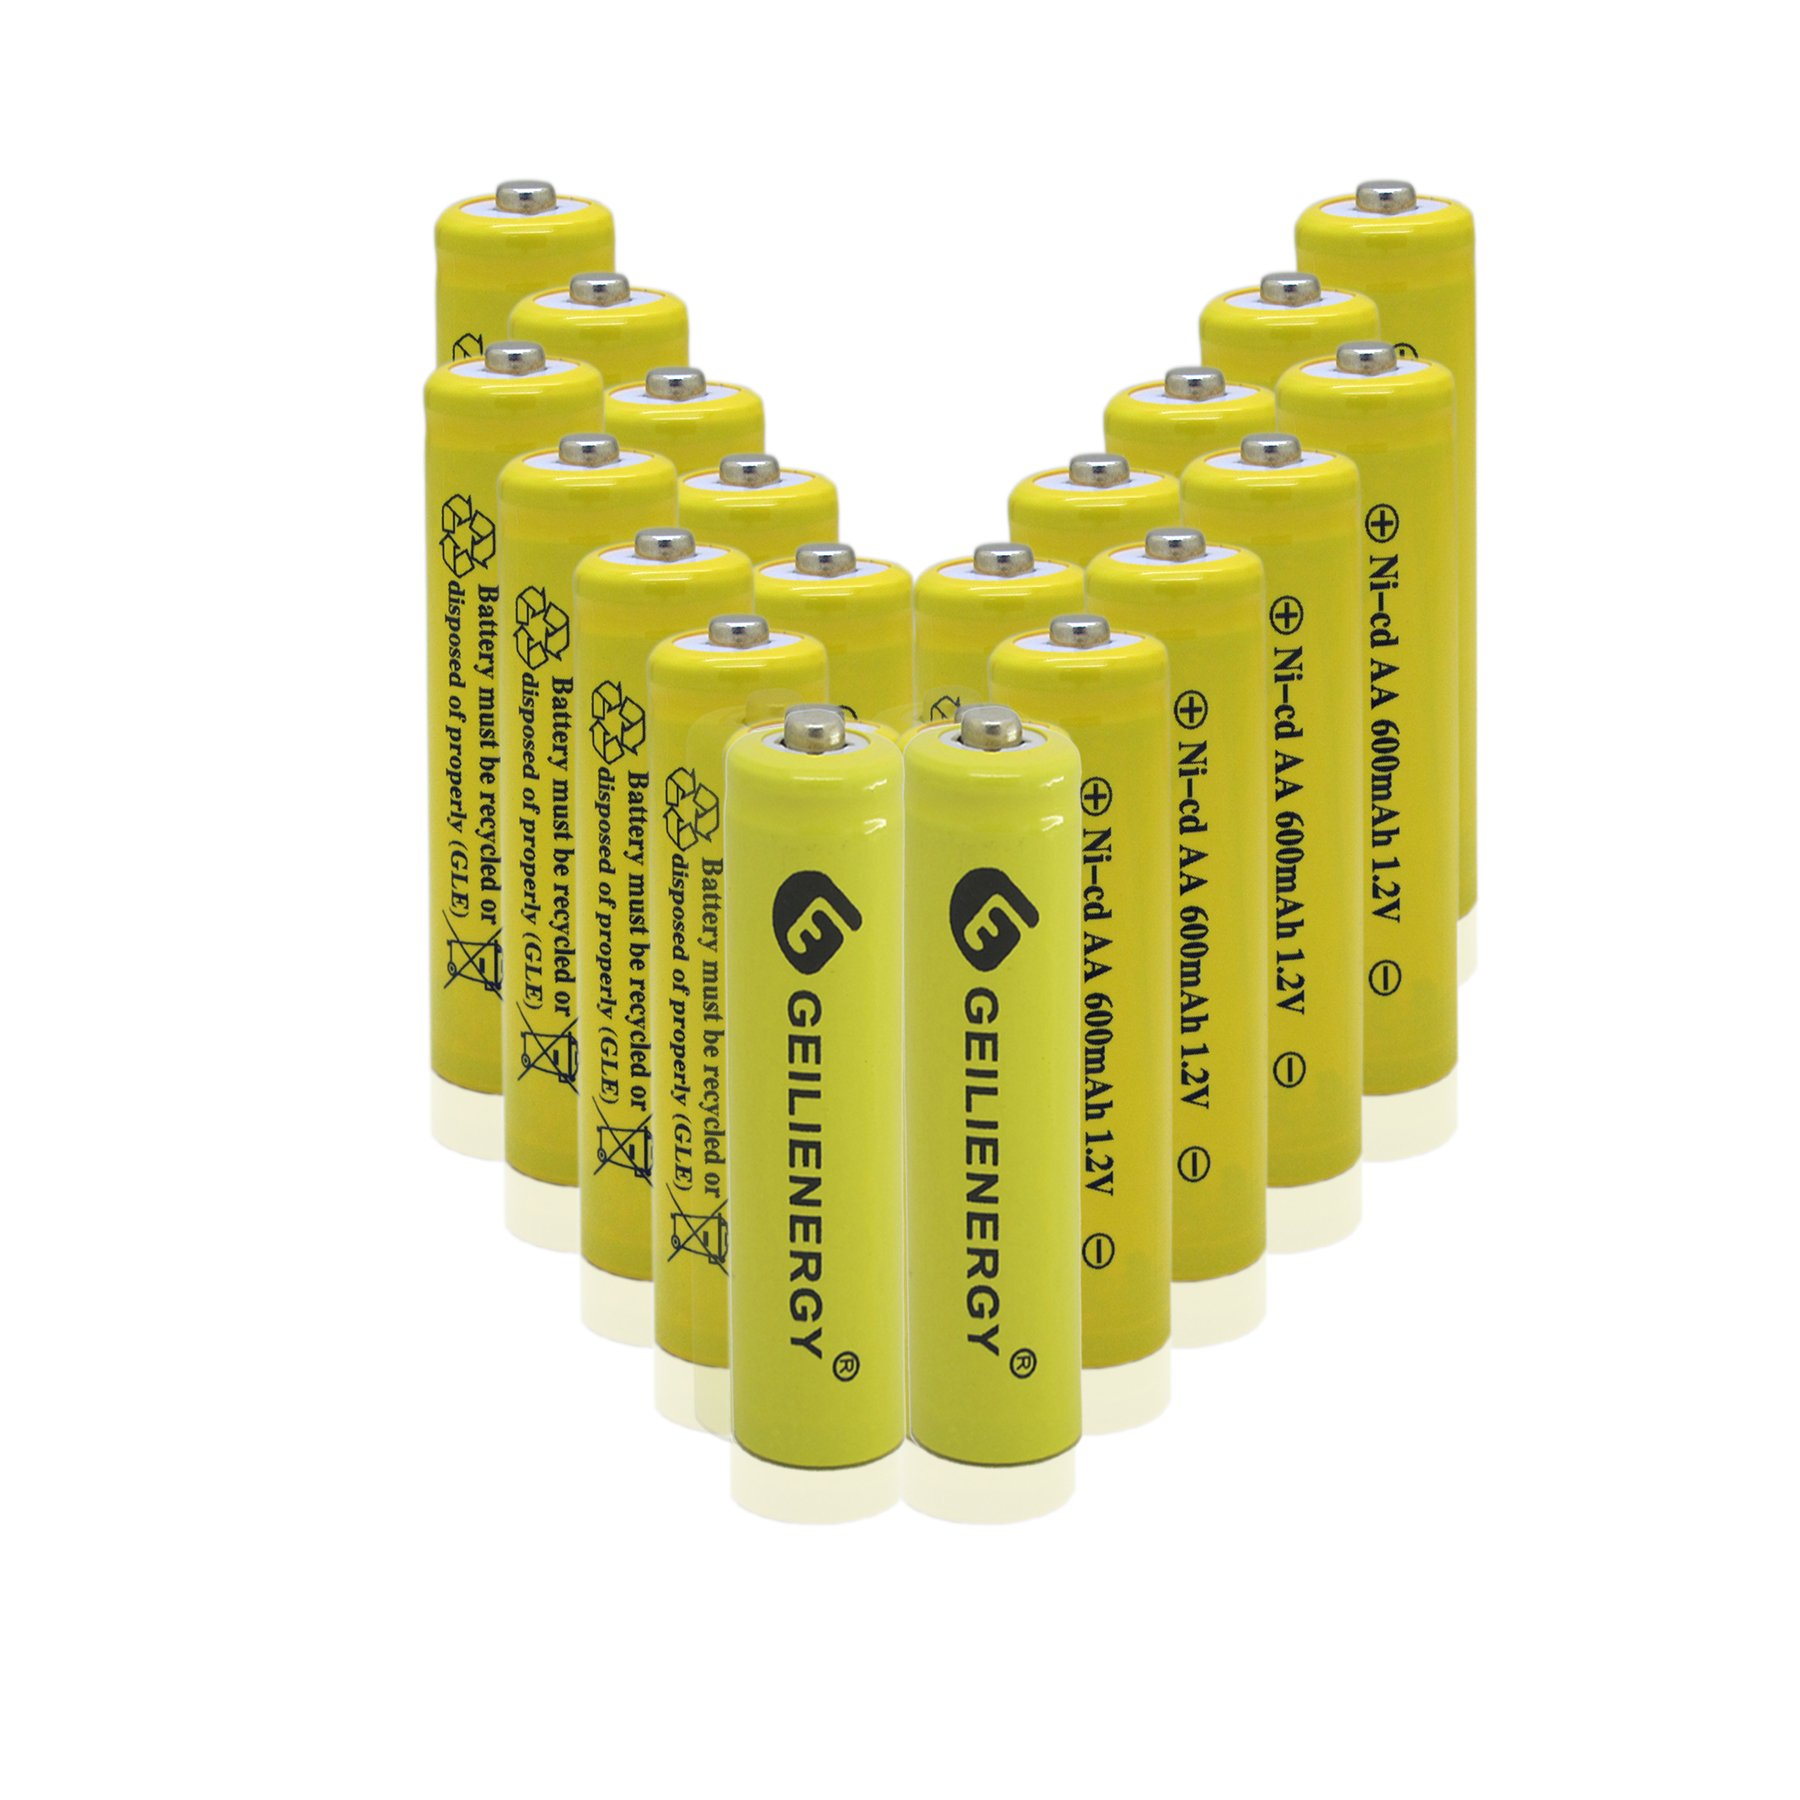 GEILIENERGY AA Size NiCd AA 600mAh 1.2V Rechargeable Batteries for Solar Lamp Solar Light(20 PCS)